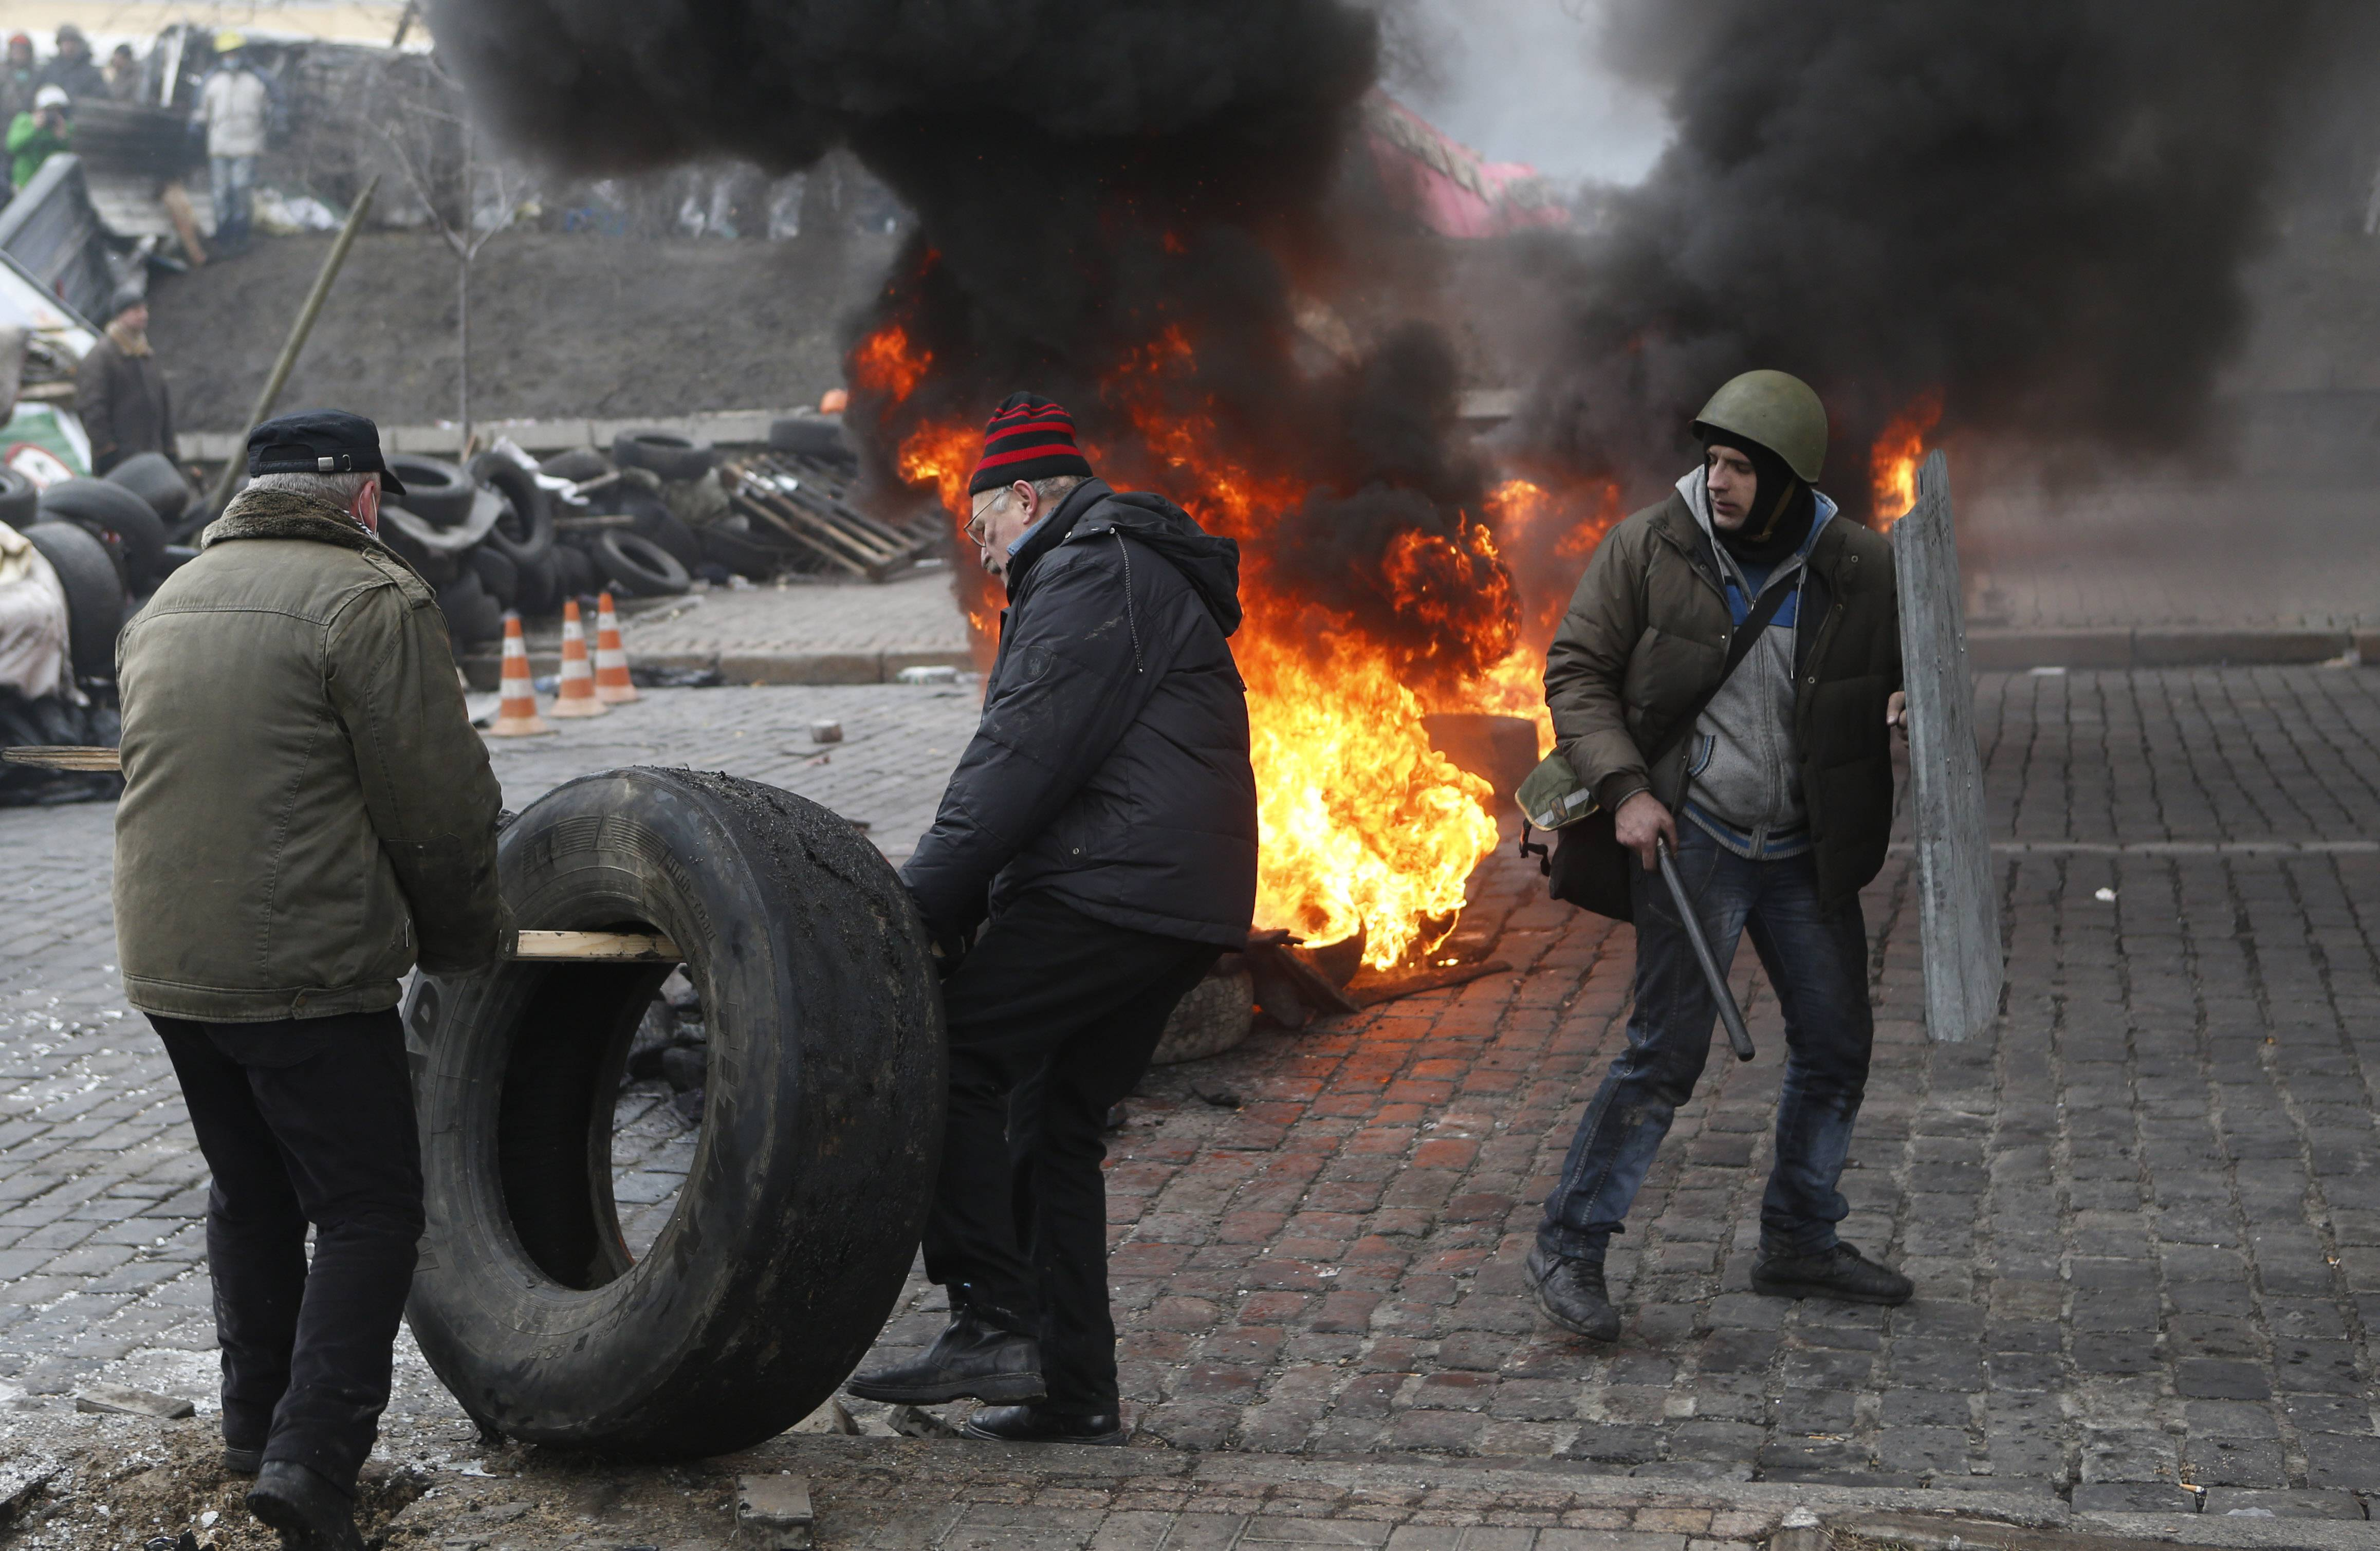 Anti-government protesters reinforce a barricade in central Kiev, Ukraine, Thursday. A brief truce in Ukraine's embattled capital failed Thursday, spiraling into fierce clashes between police and anti-government protesters.